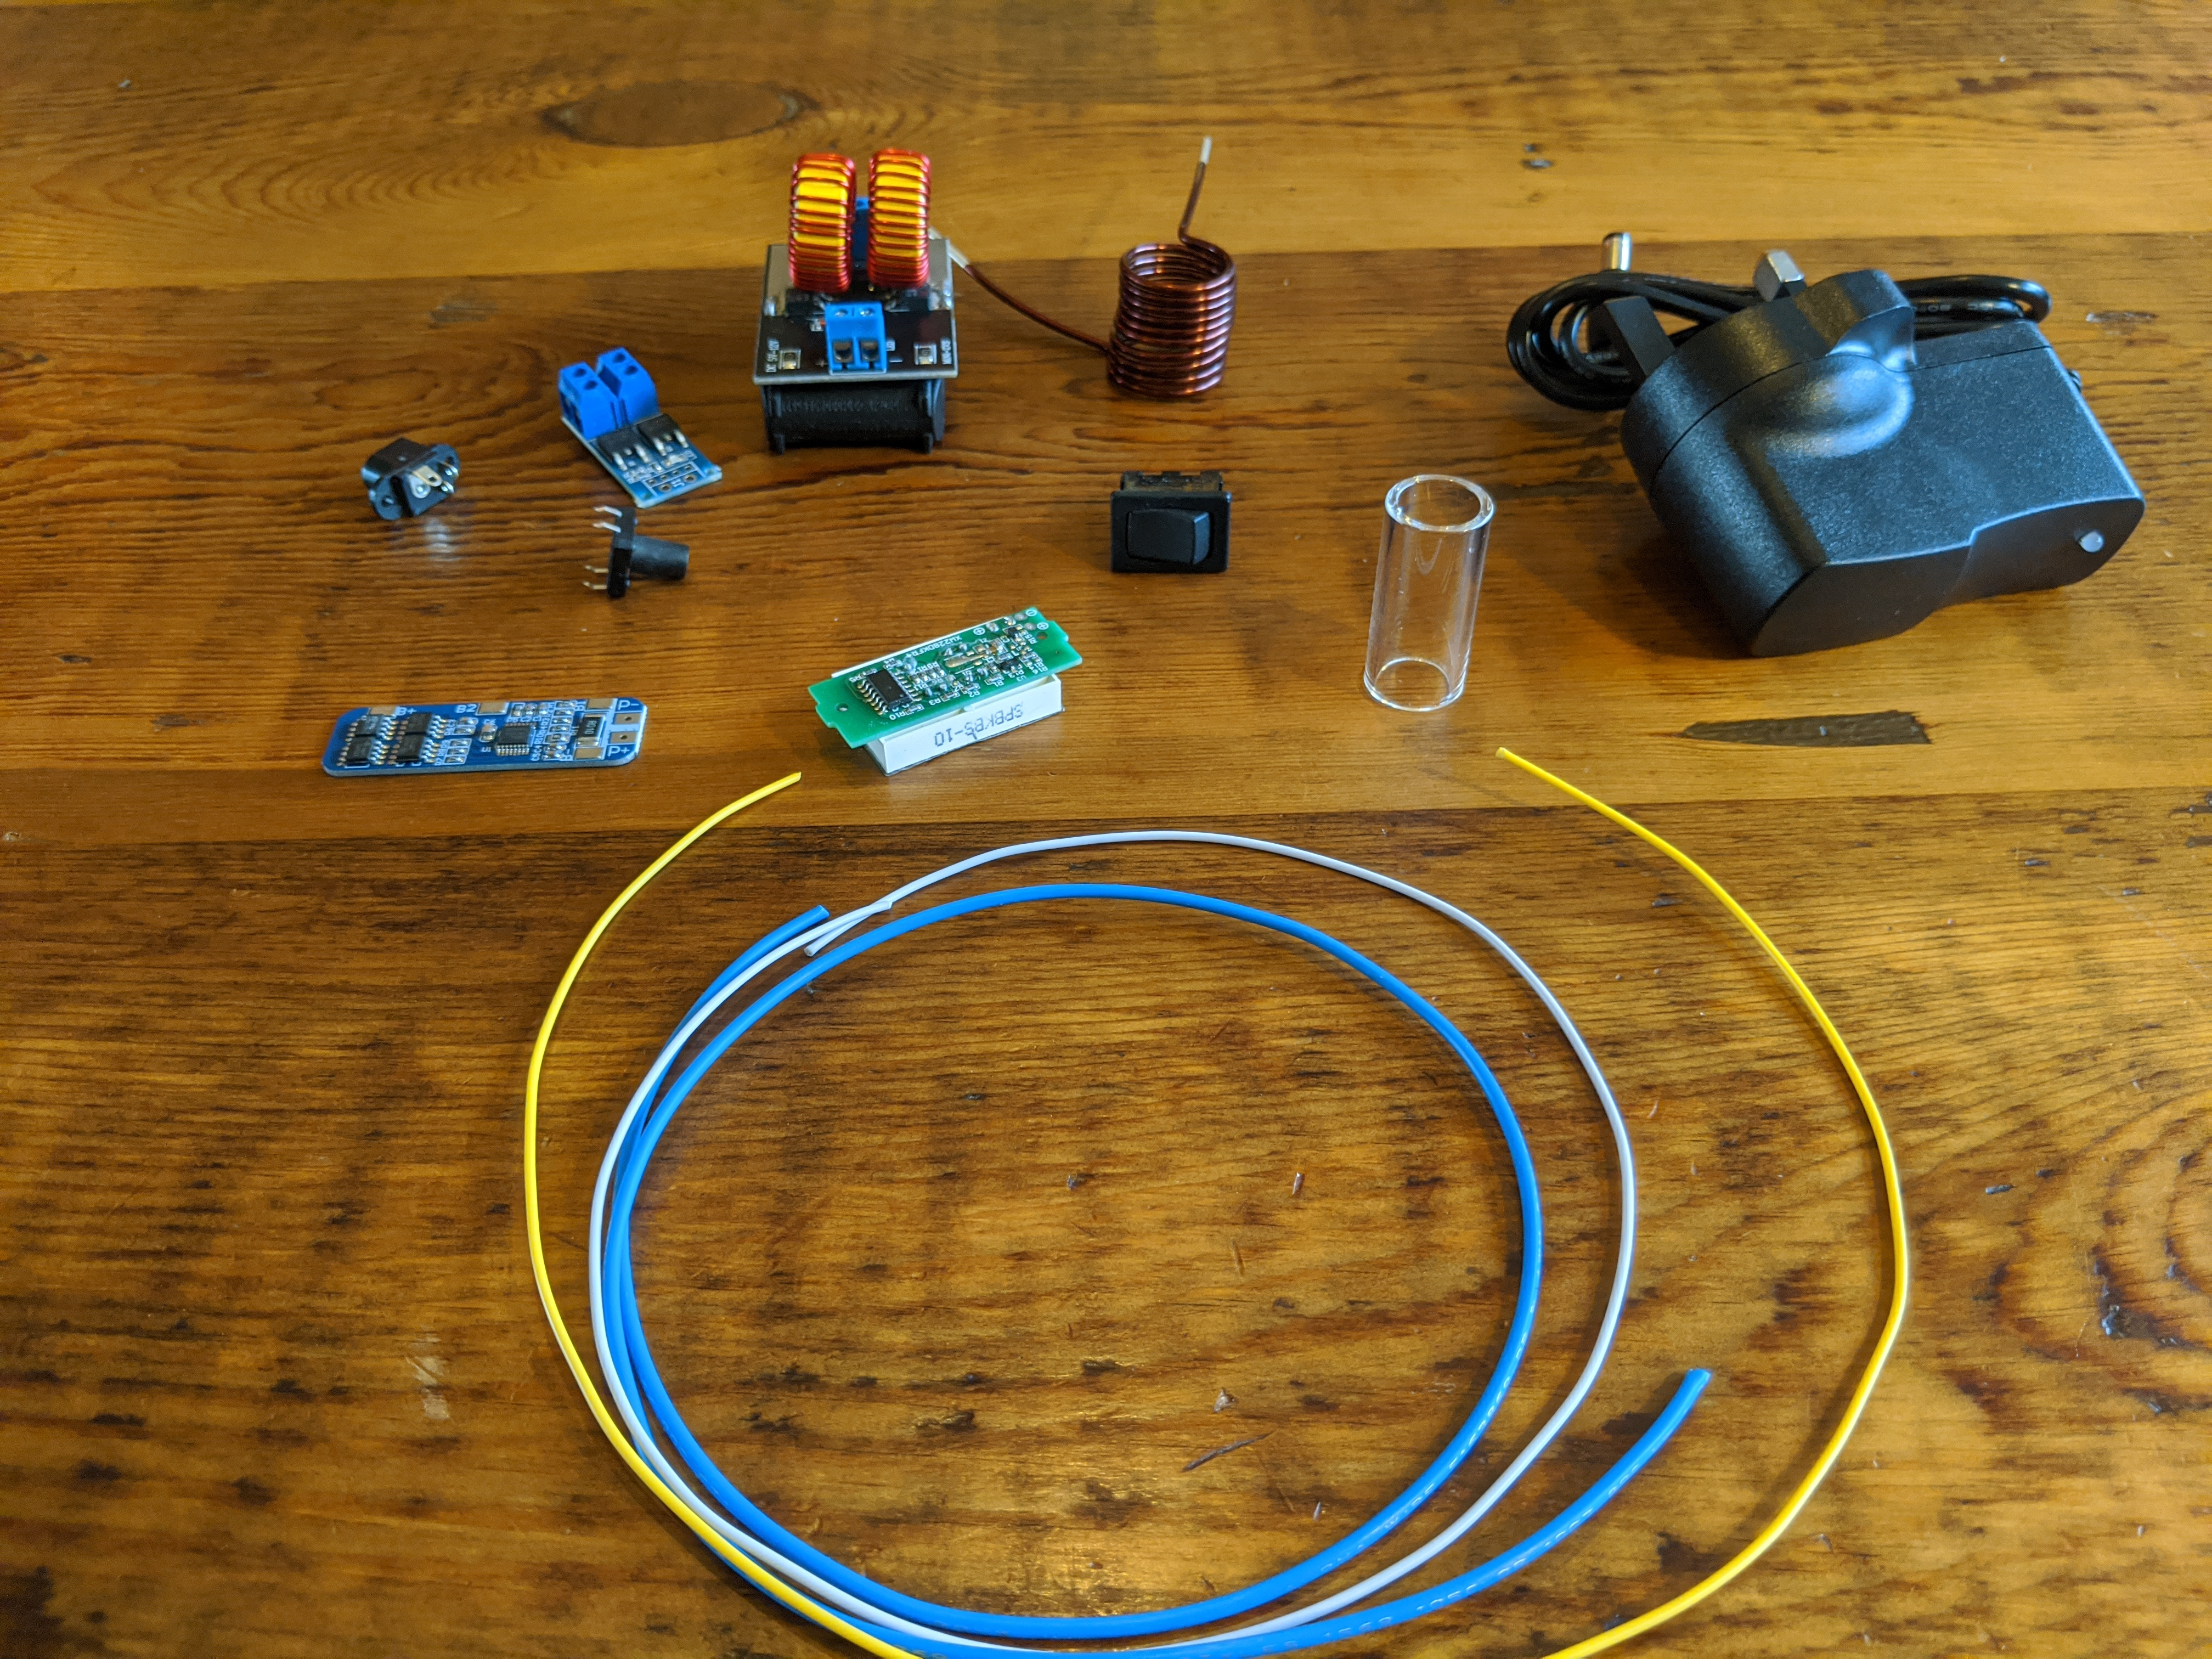 Components of the VapOven Elements Battery DIY Kit to build your own DynaVap induction heater